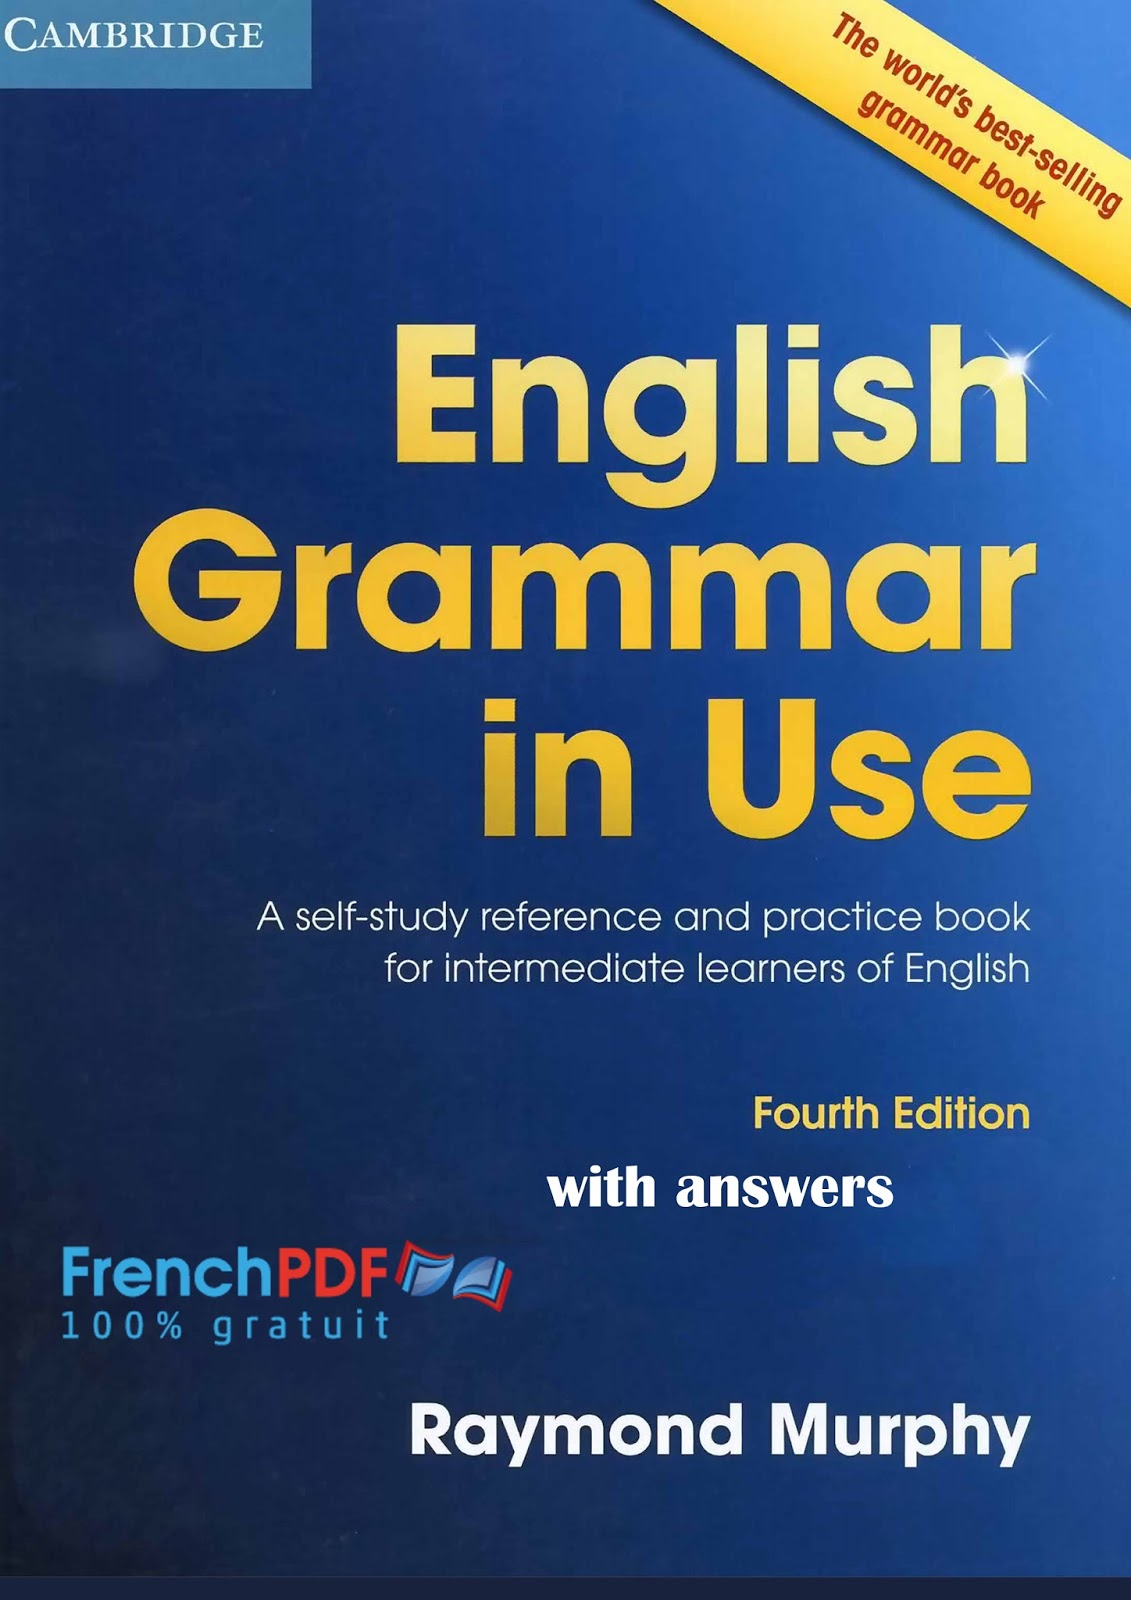 Sample units | content | english grammar in use fourth edition.